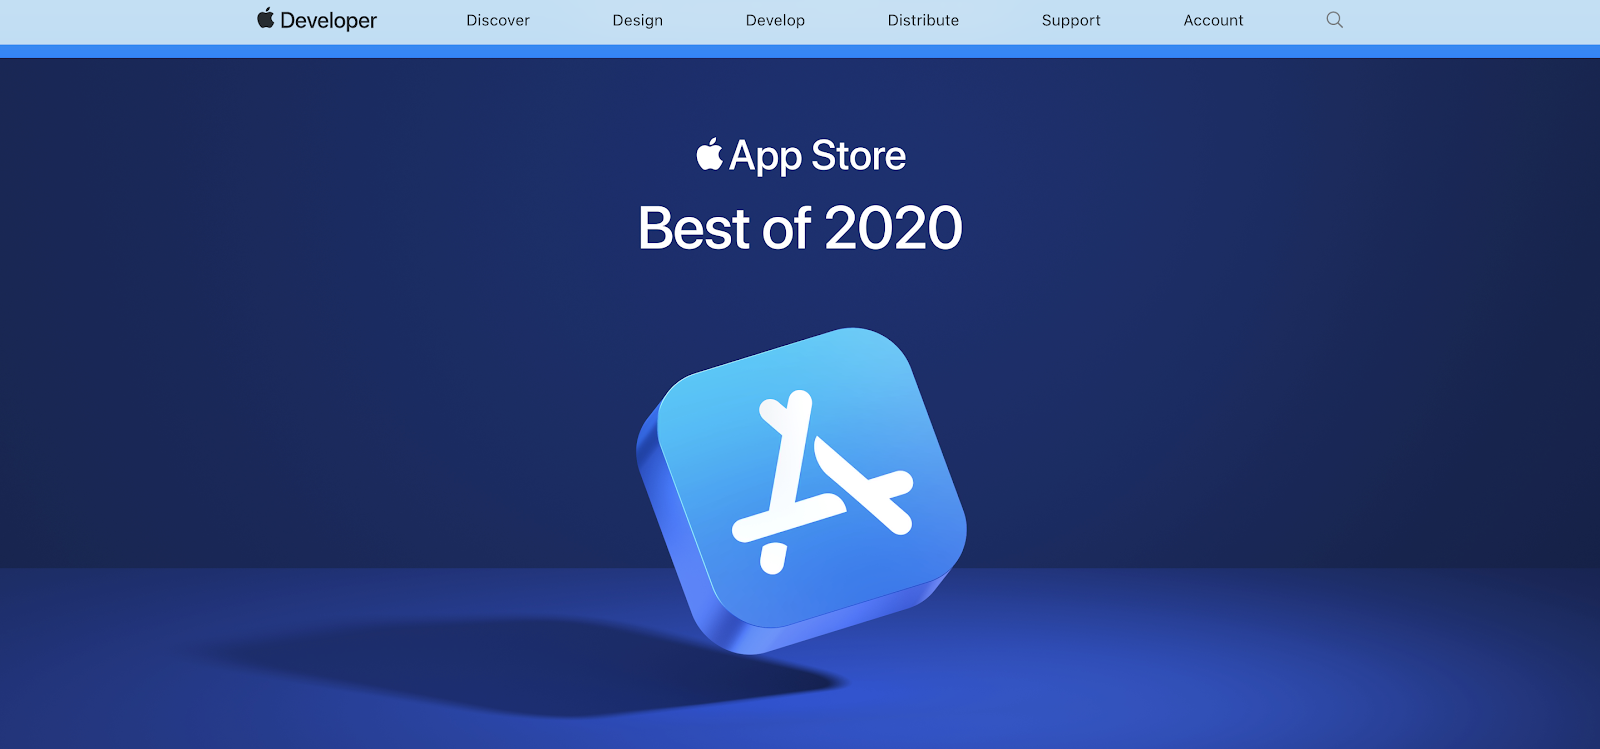 App Store App placement